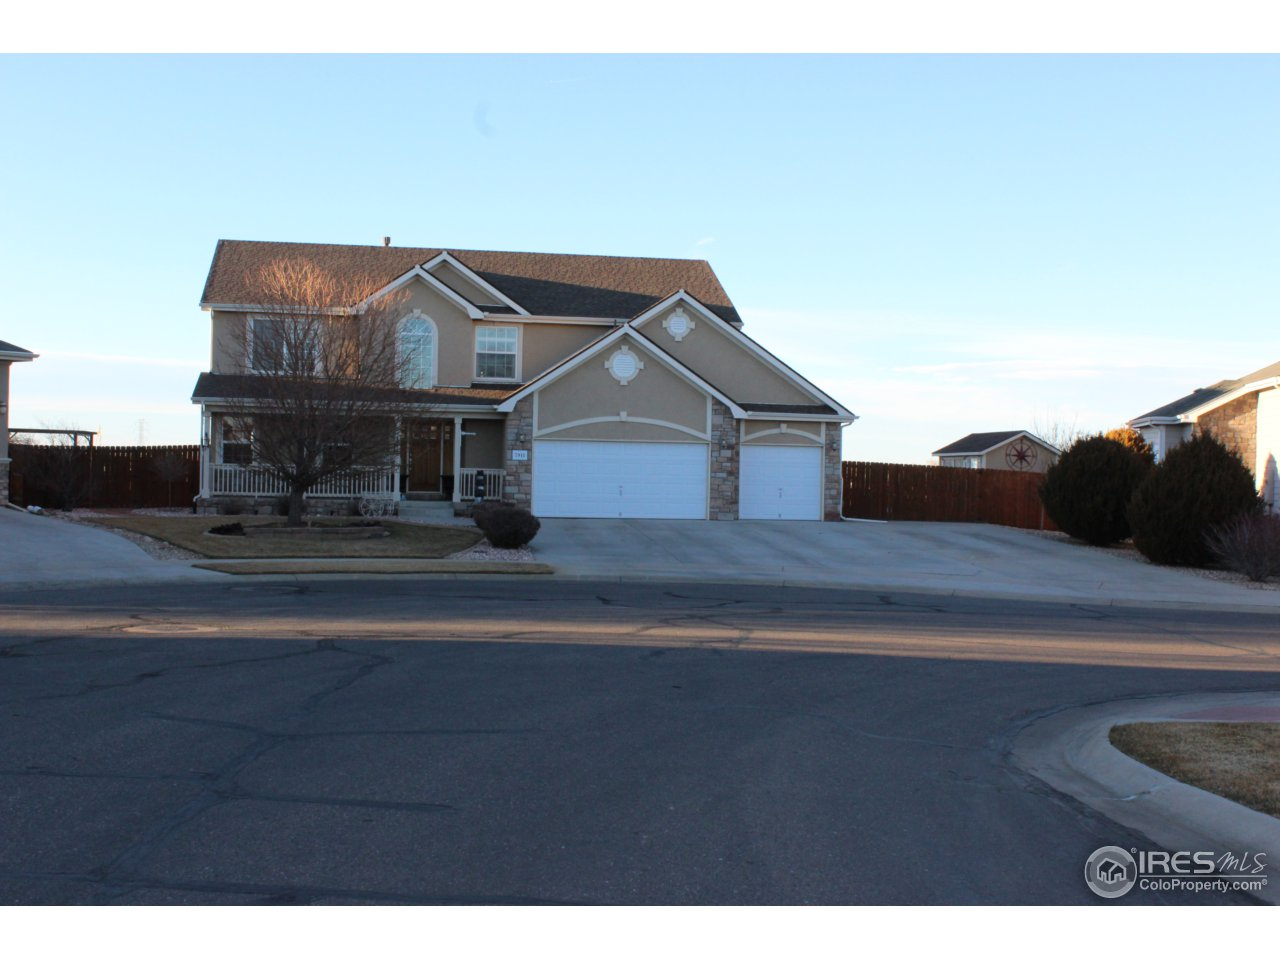 7911 18th St Rd, Greeley CO 80634